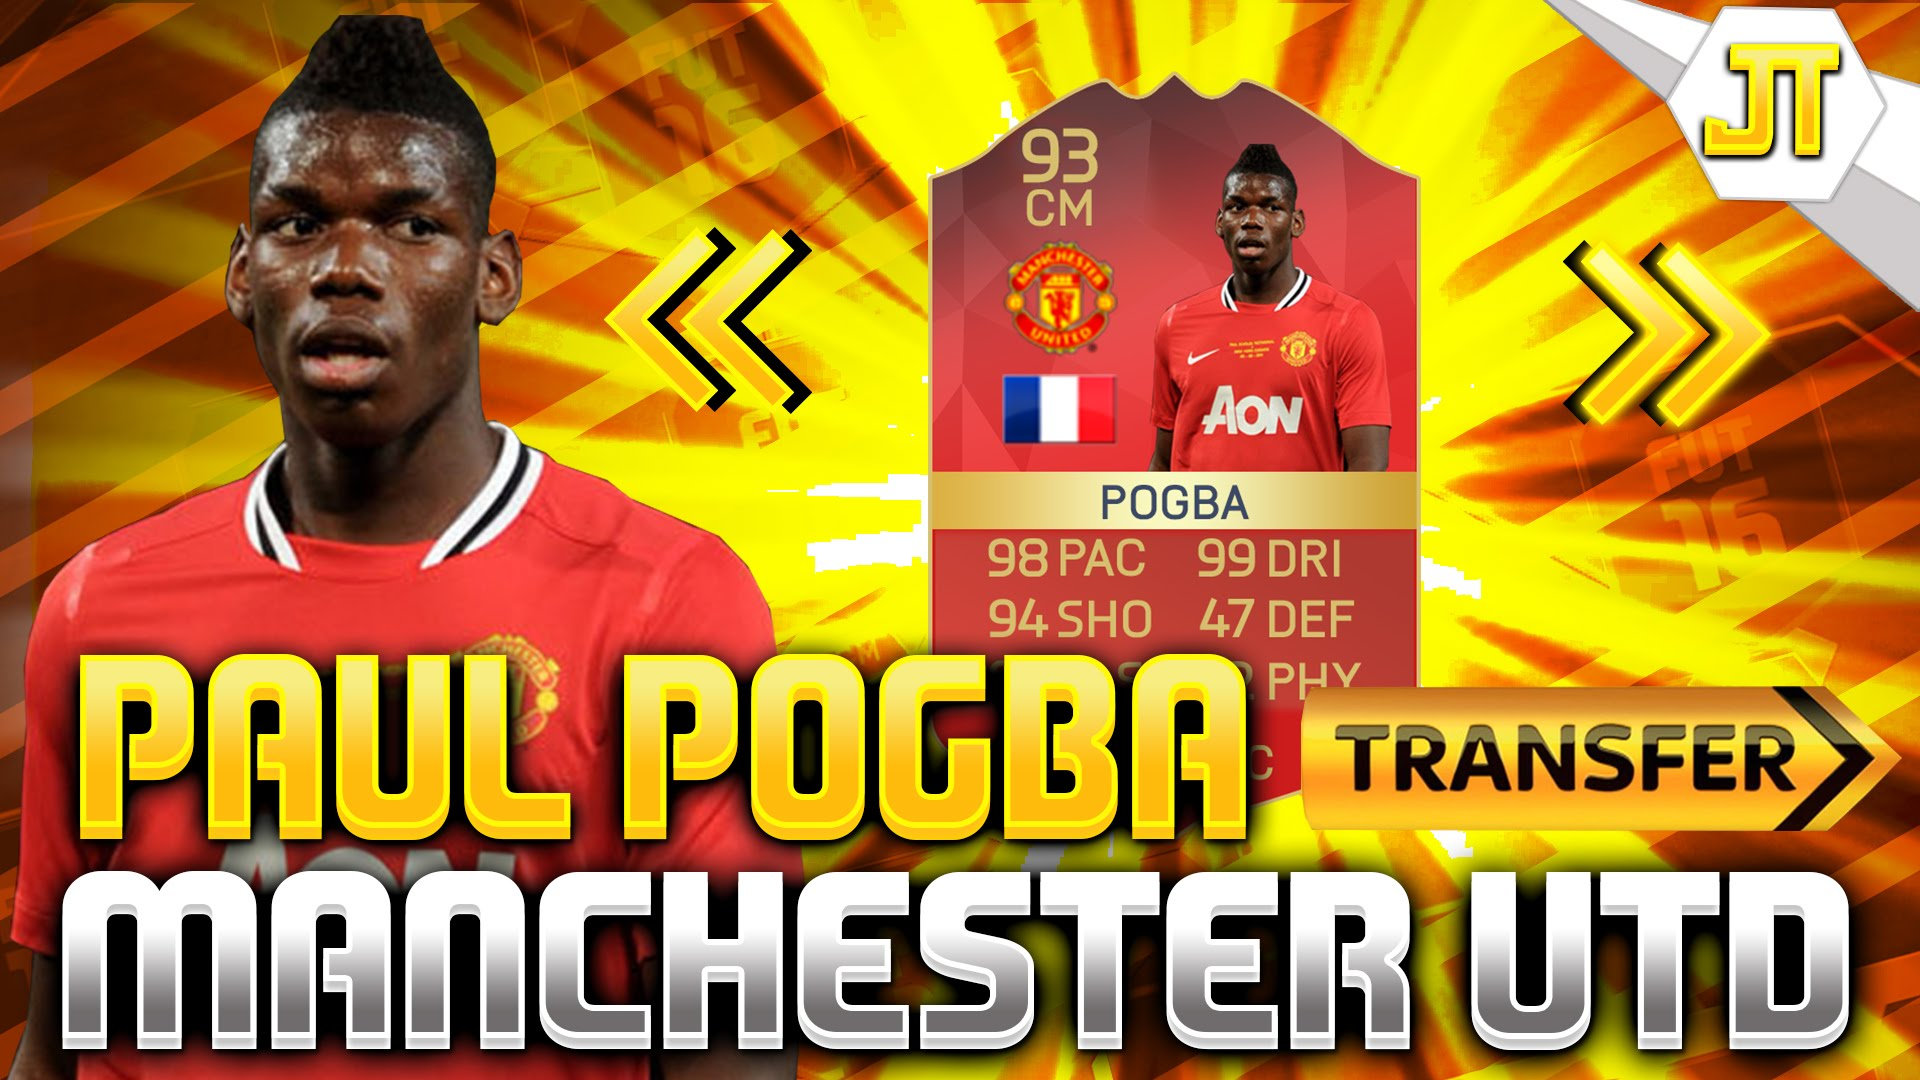 Paul Pogba Wallpaper 2016 Manchester United Spieler Bild Idee 1920x1080